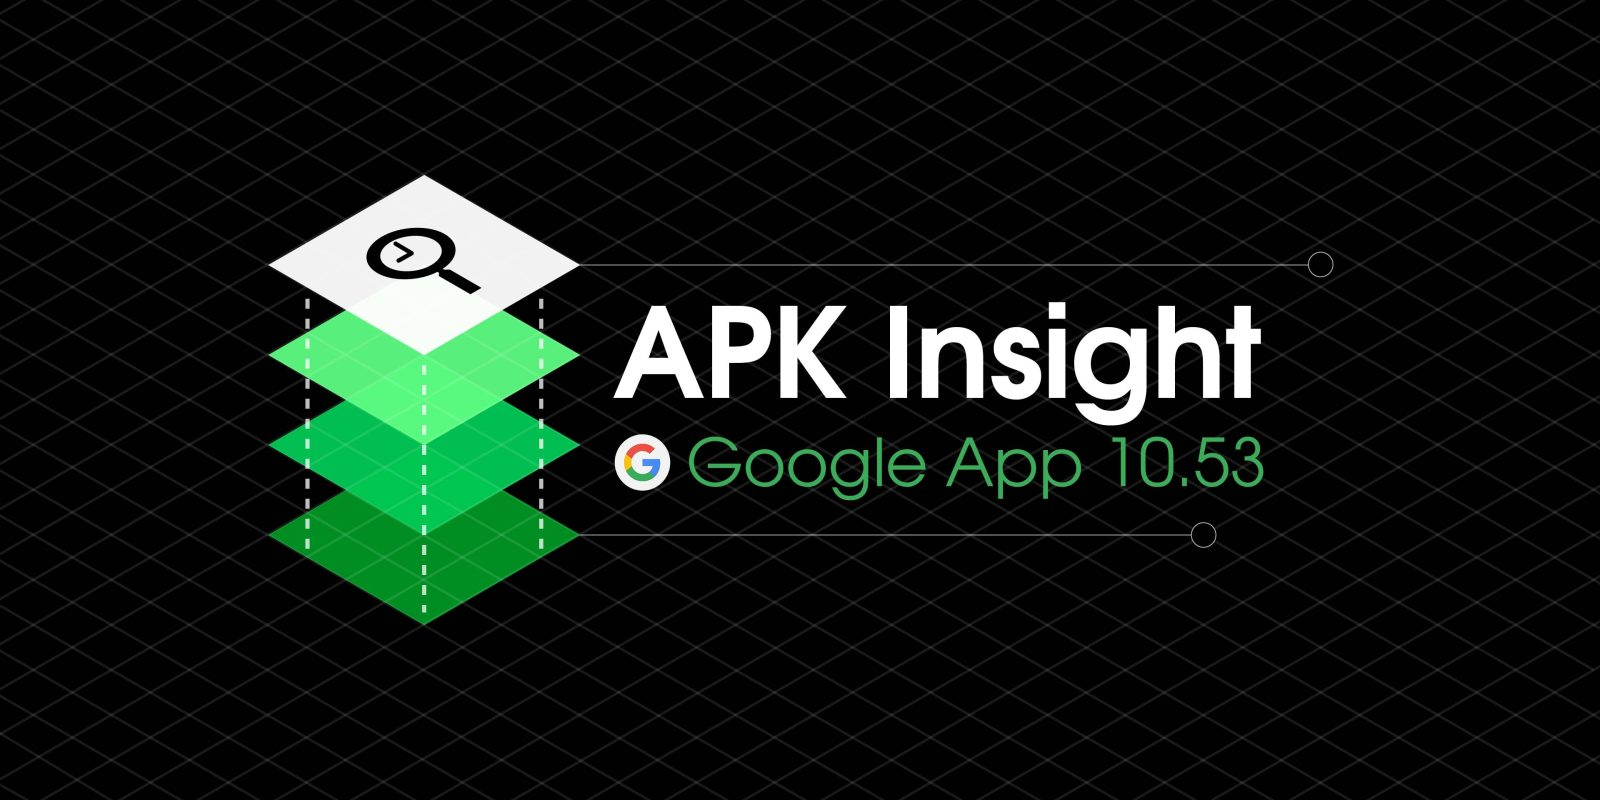 APK Insight - 9to5Google